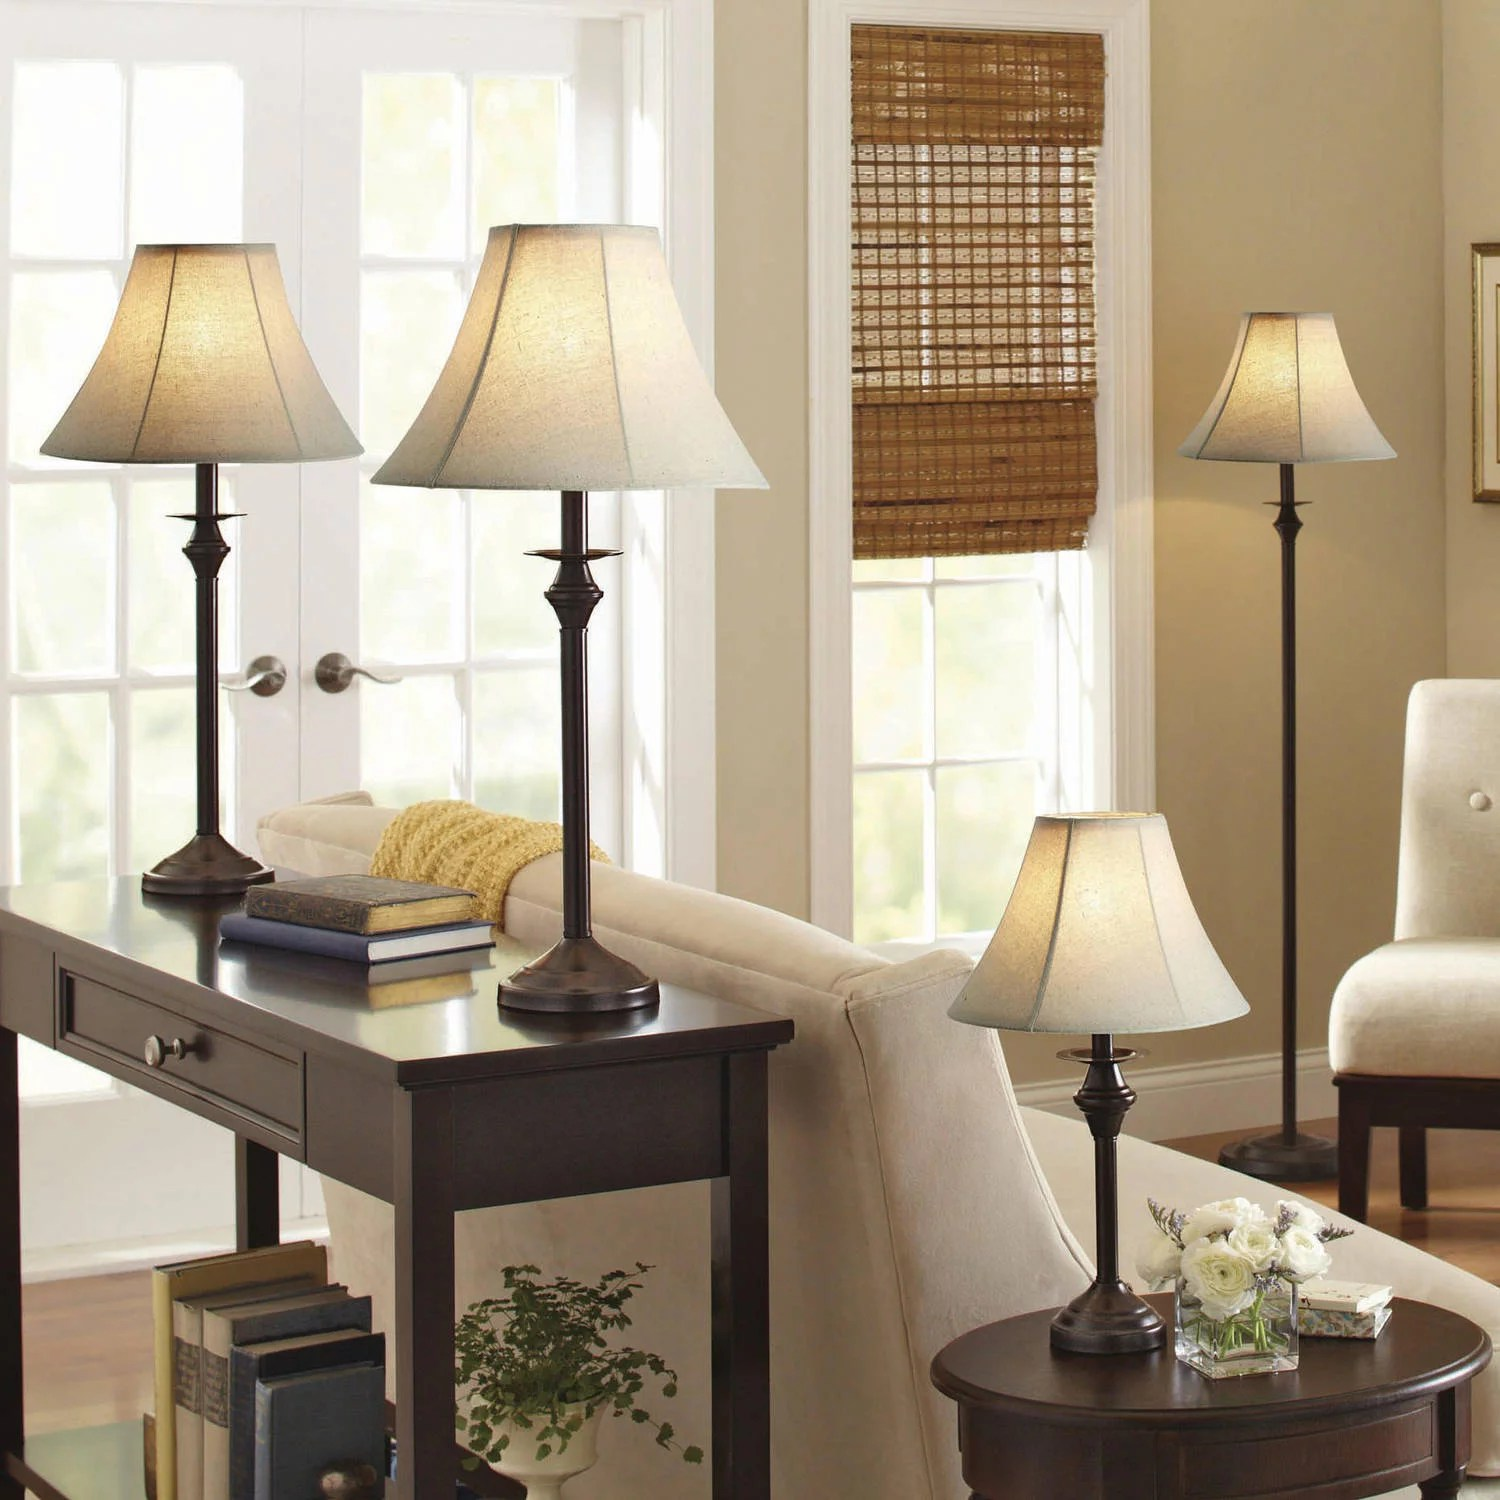 Details About Living Room 4 Piece Lamp Set Floor Table Accent Lamps Leather Shade Light Decor